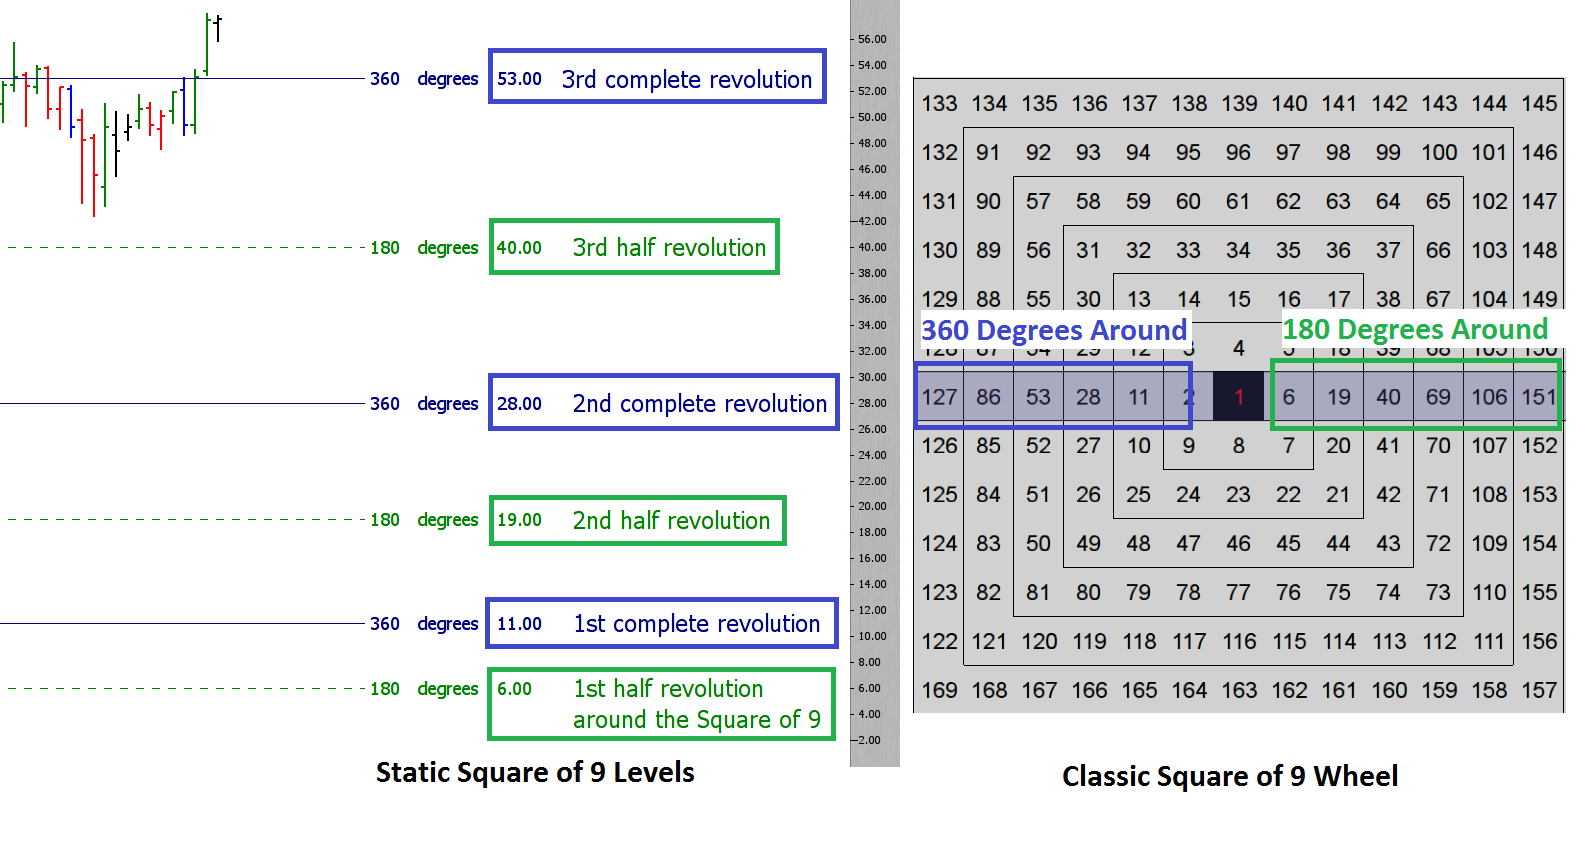 Static Sqaure of 9 Levels and Classic Square of 9 Wheel